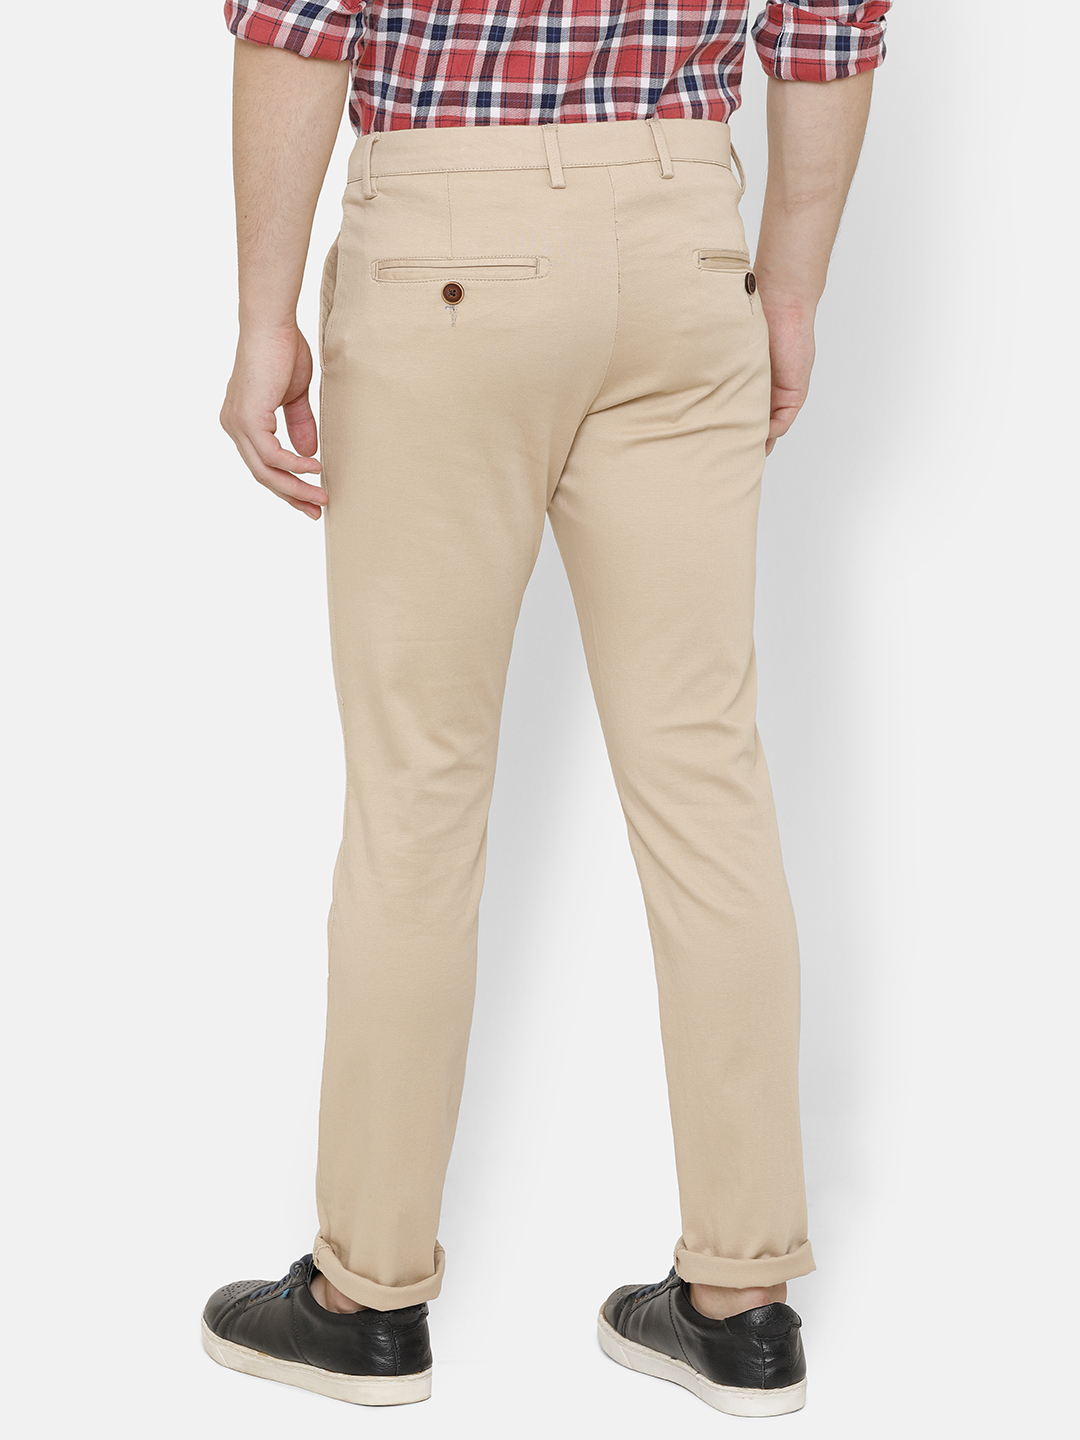 Bar Harbour Men Beige Slim Fit Solid Chino Trousers